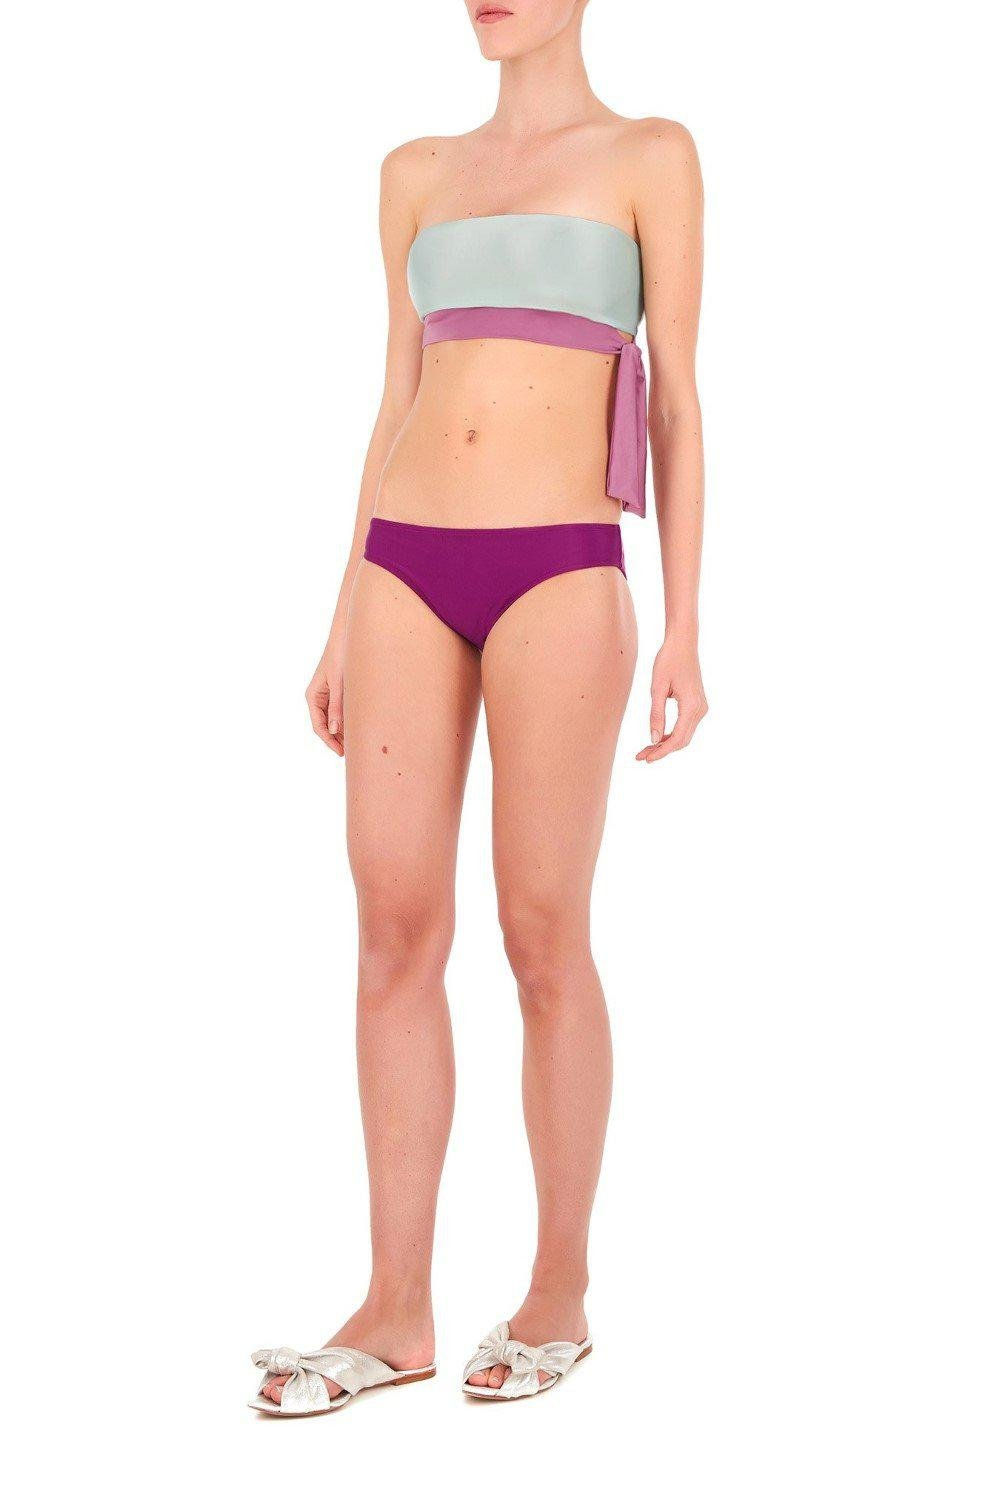 Cinque Terre Strapless Bikini with Knot Detail